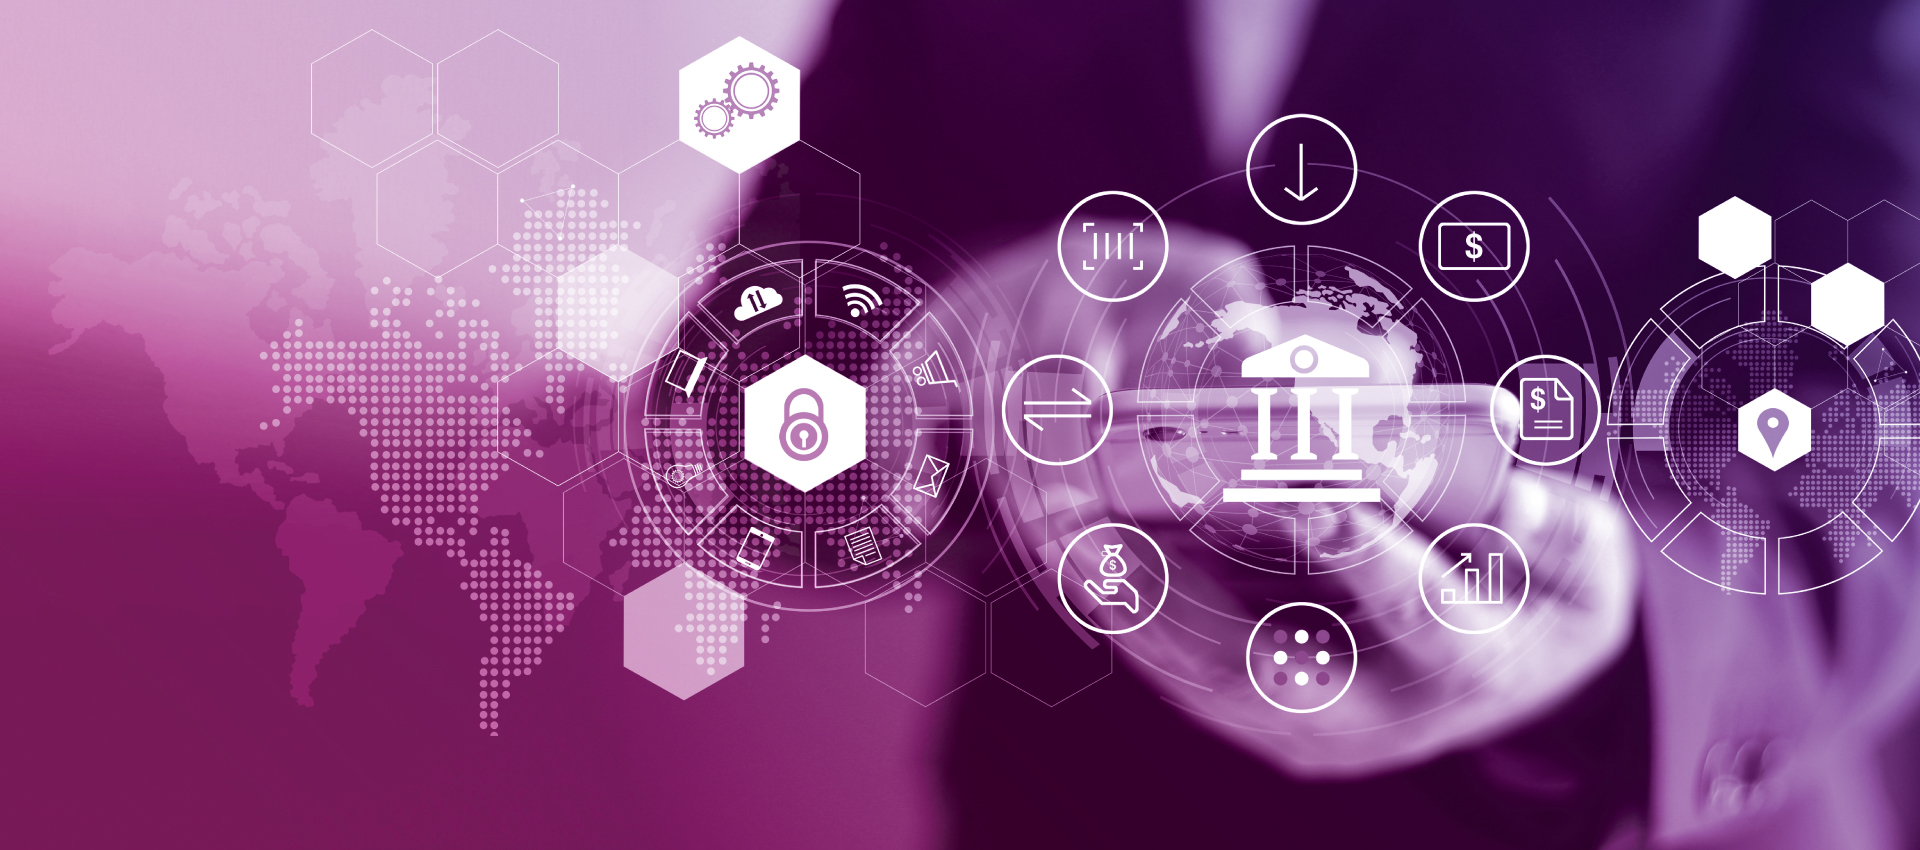 Securing the Digital Banking Ecosystem with API Security & Governance